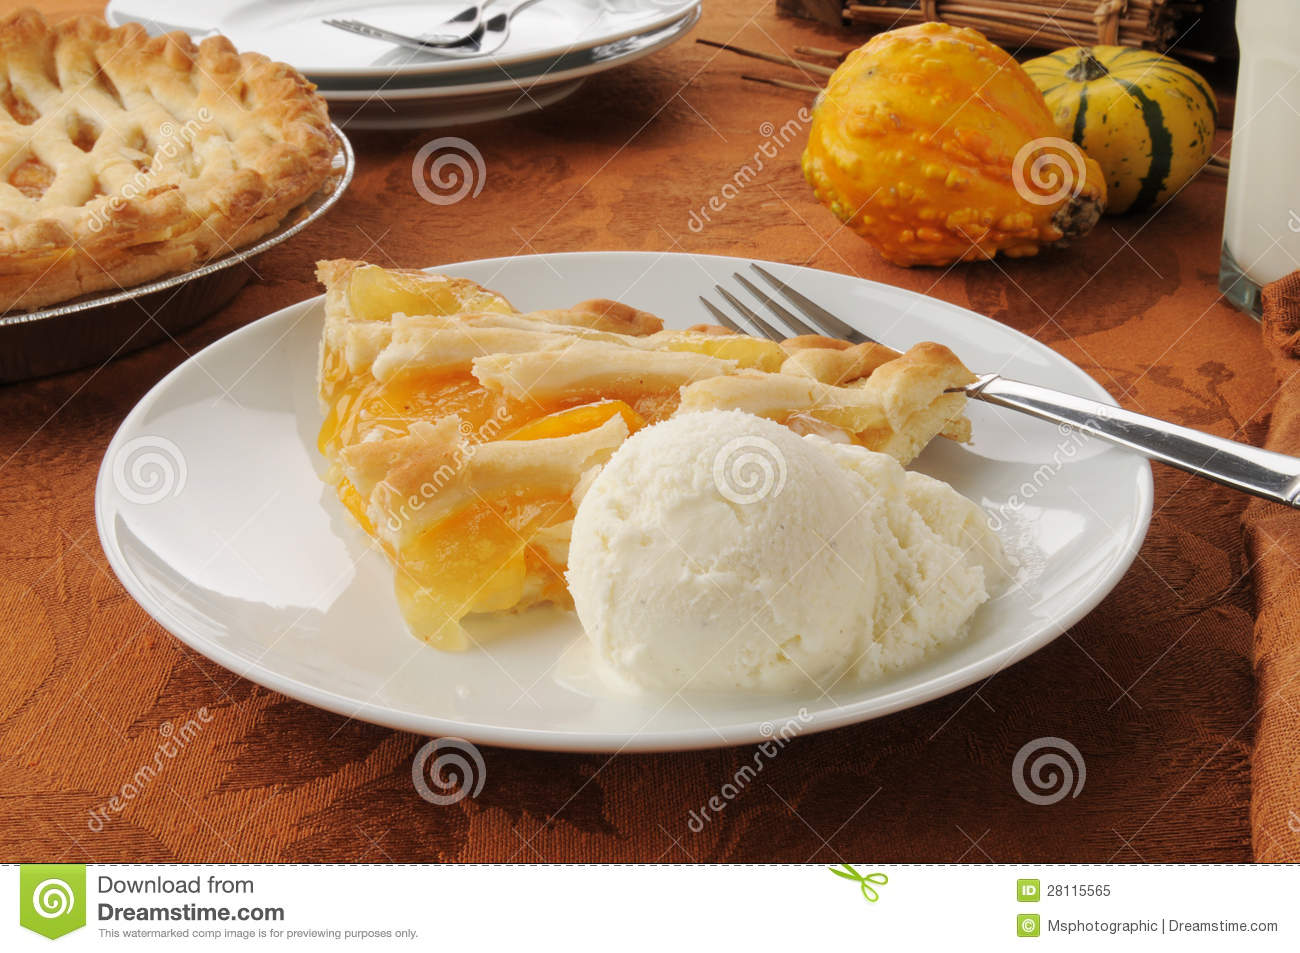 Peach Pie With Ice Cream Royalty Free Stock Photo   Image  28115565